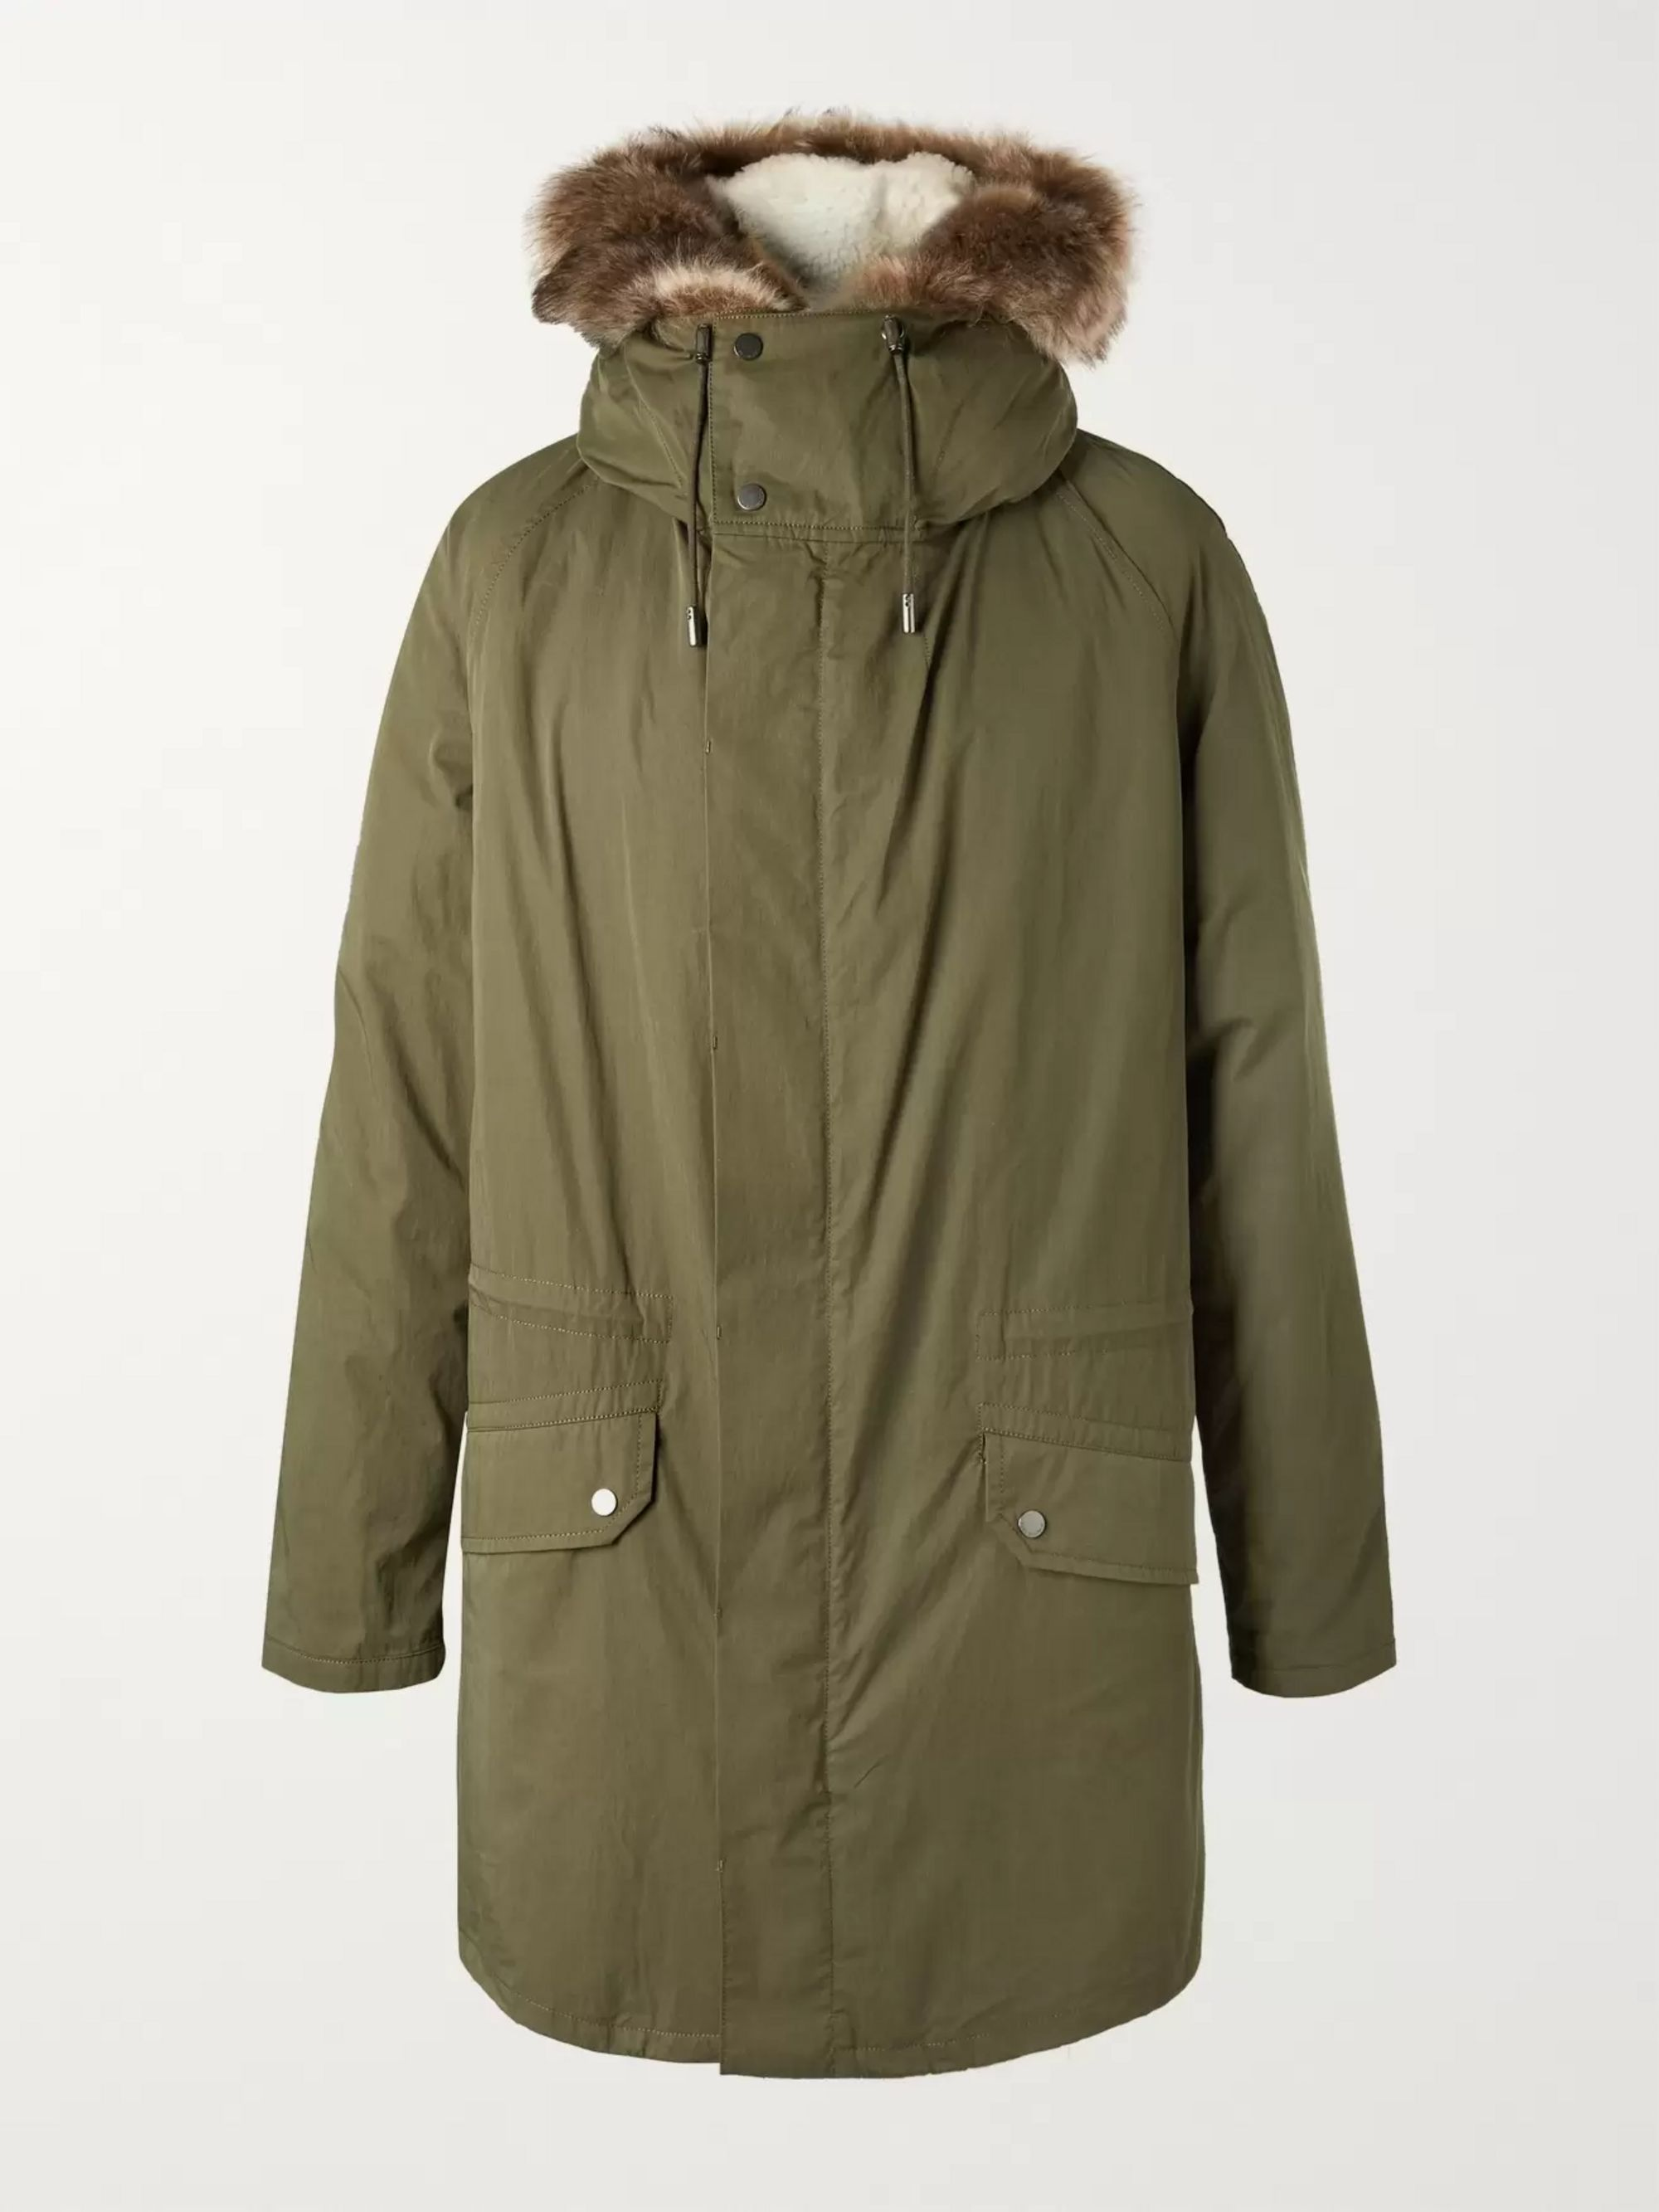 Yves Salomon Shearling-Lined Cotton Hooded Down Parka